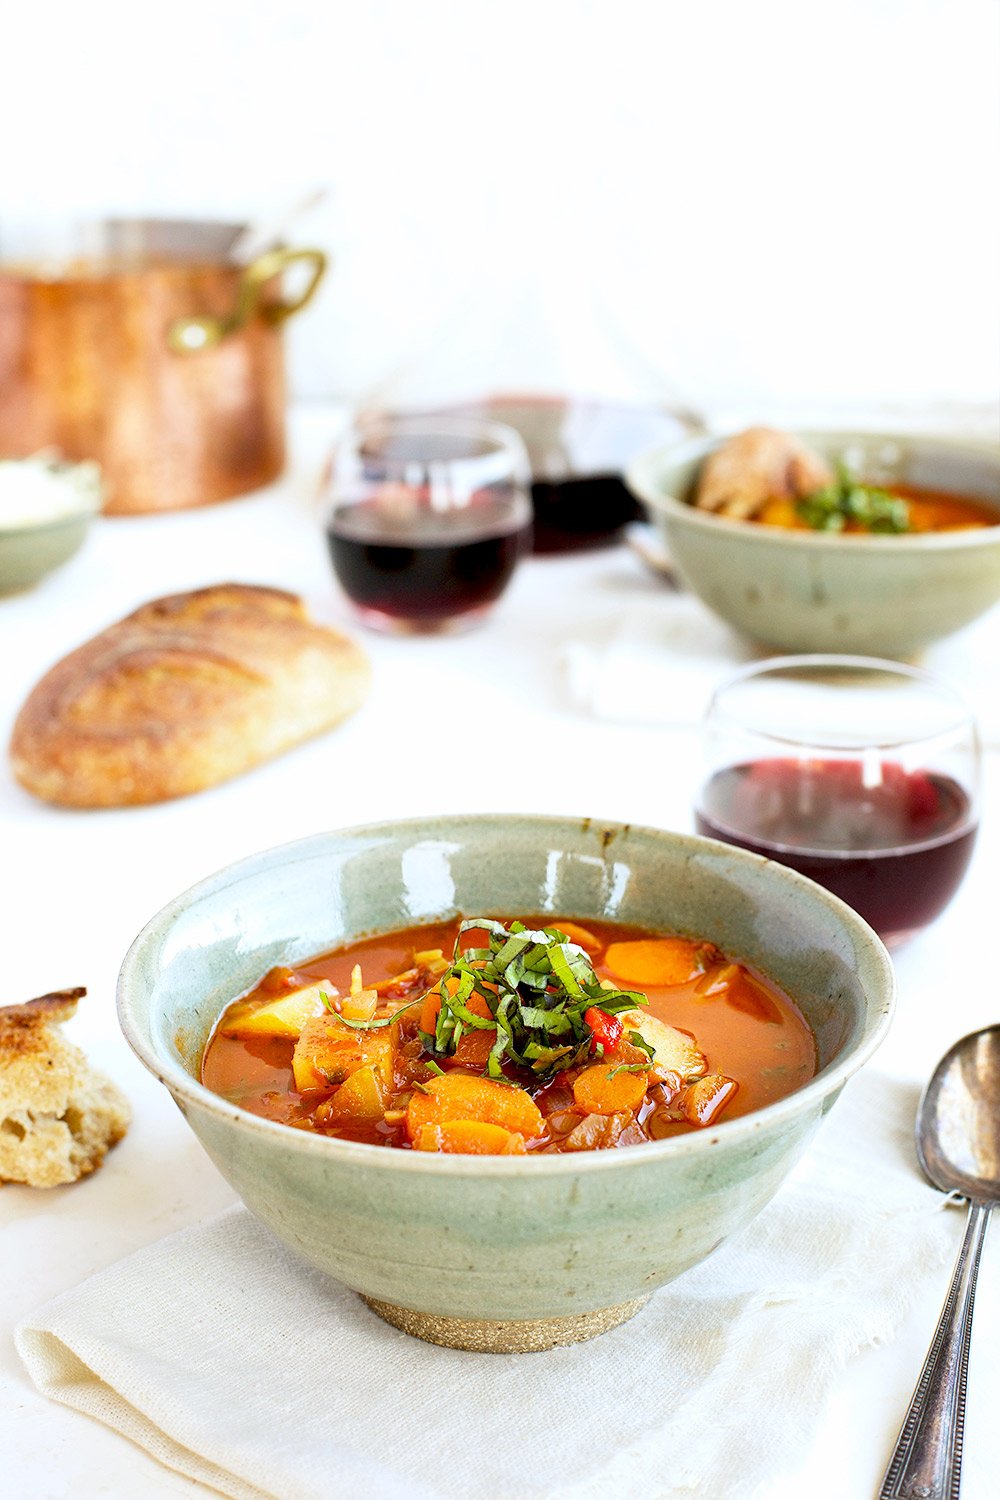 Hearty Vegetable Tomato Basil Stew